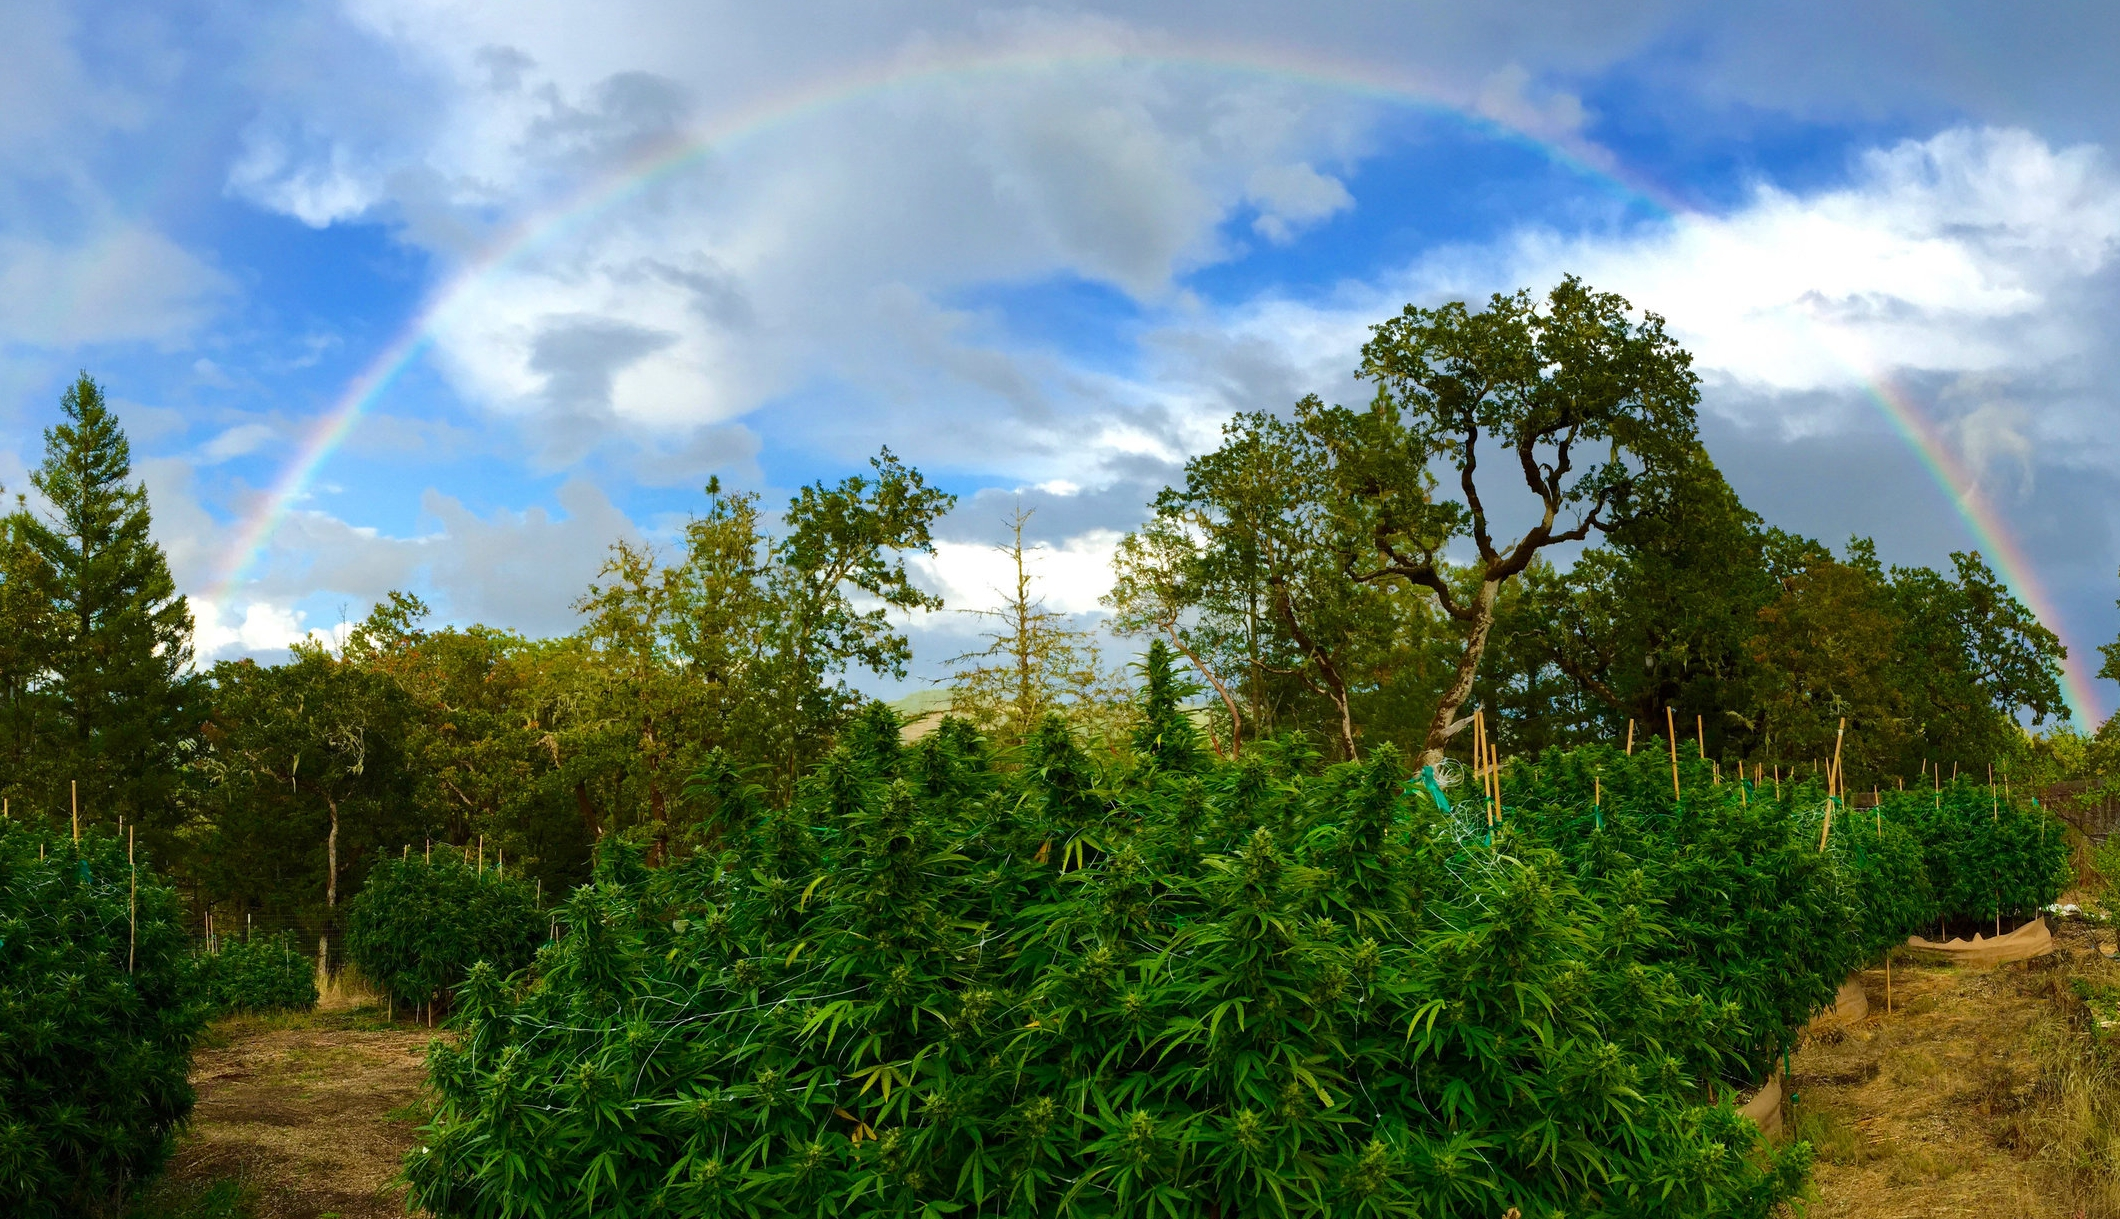 Rainbow over plants web.jpg